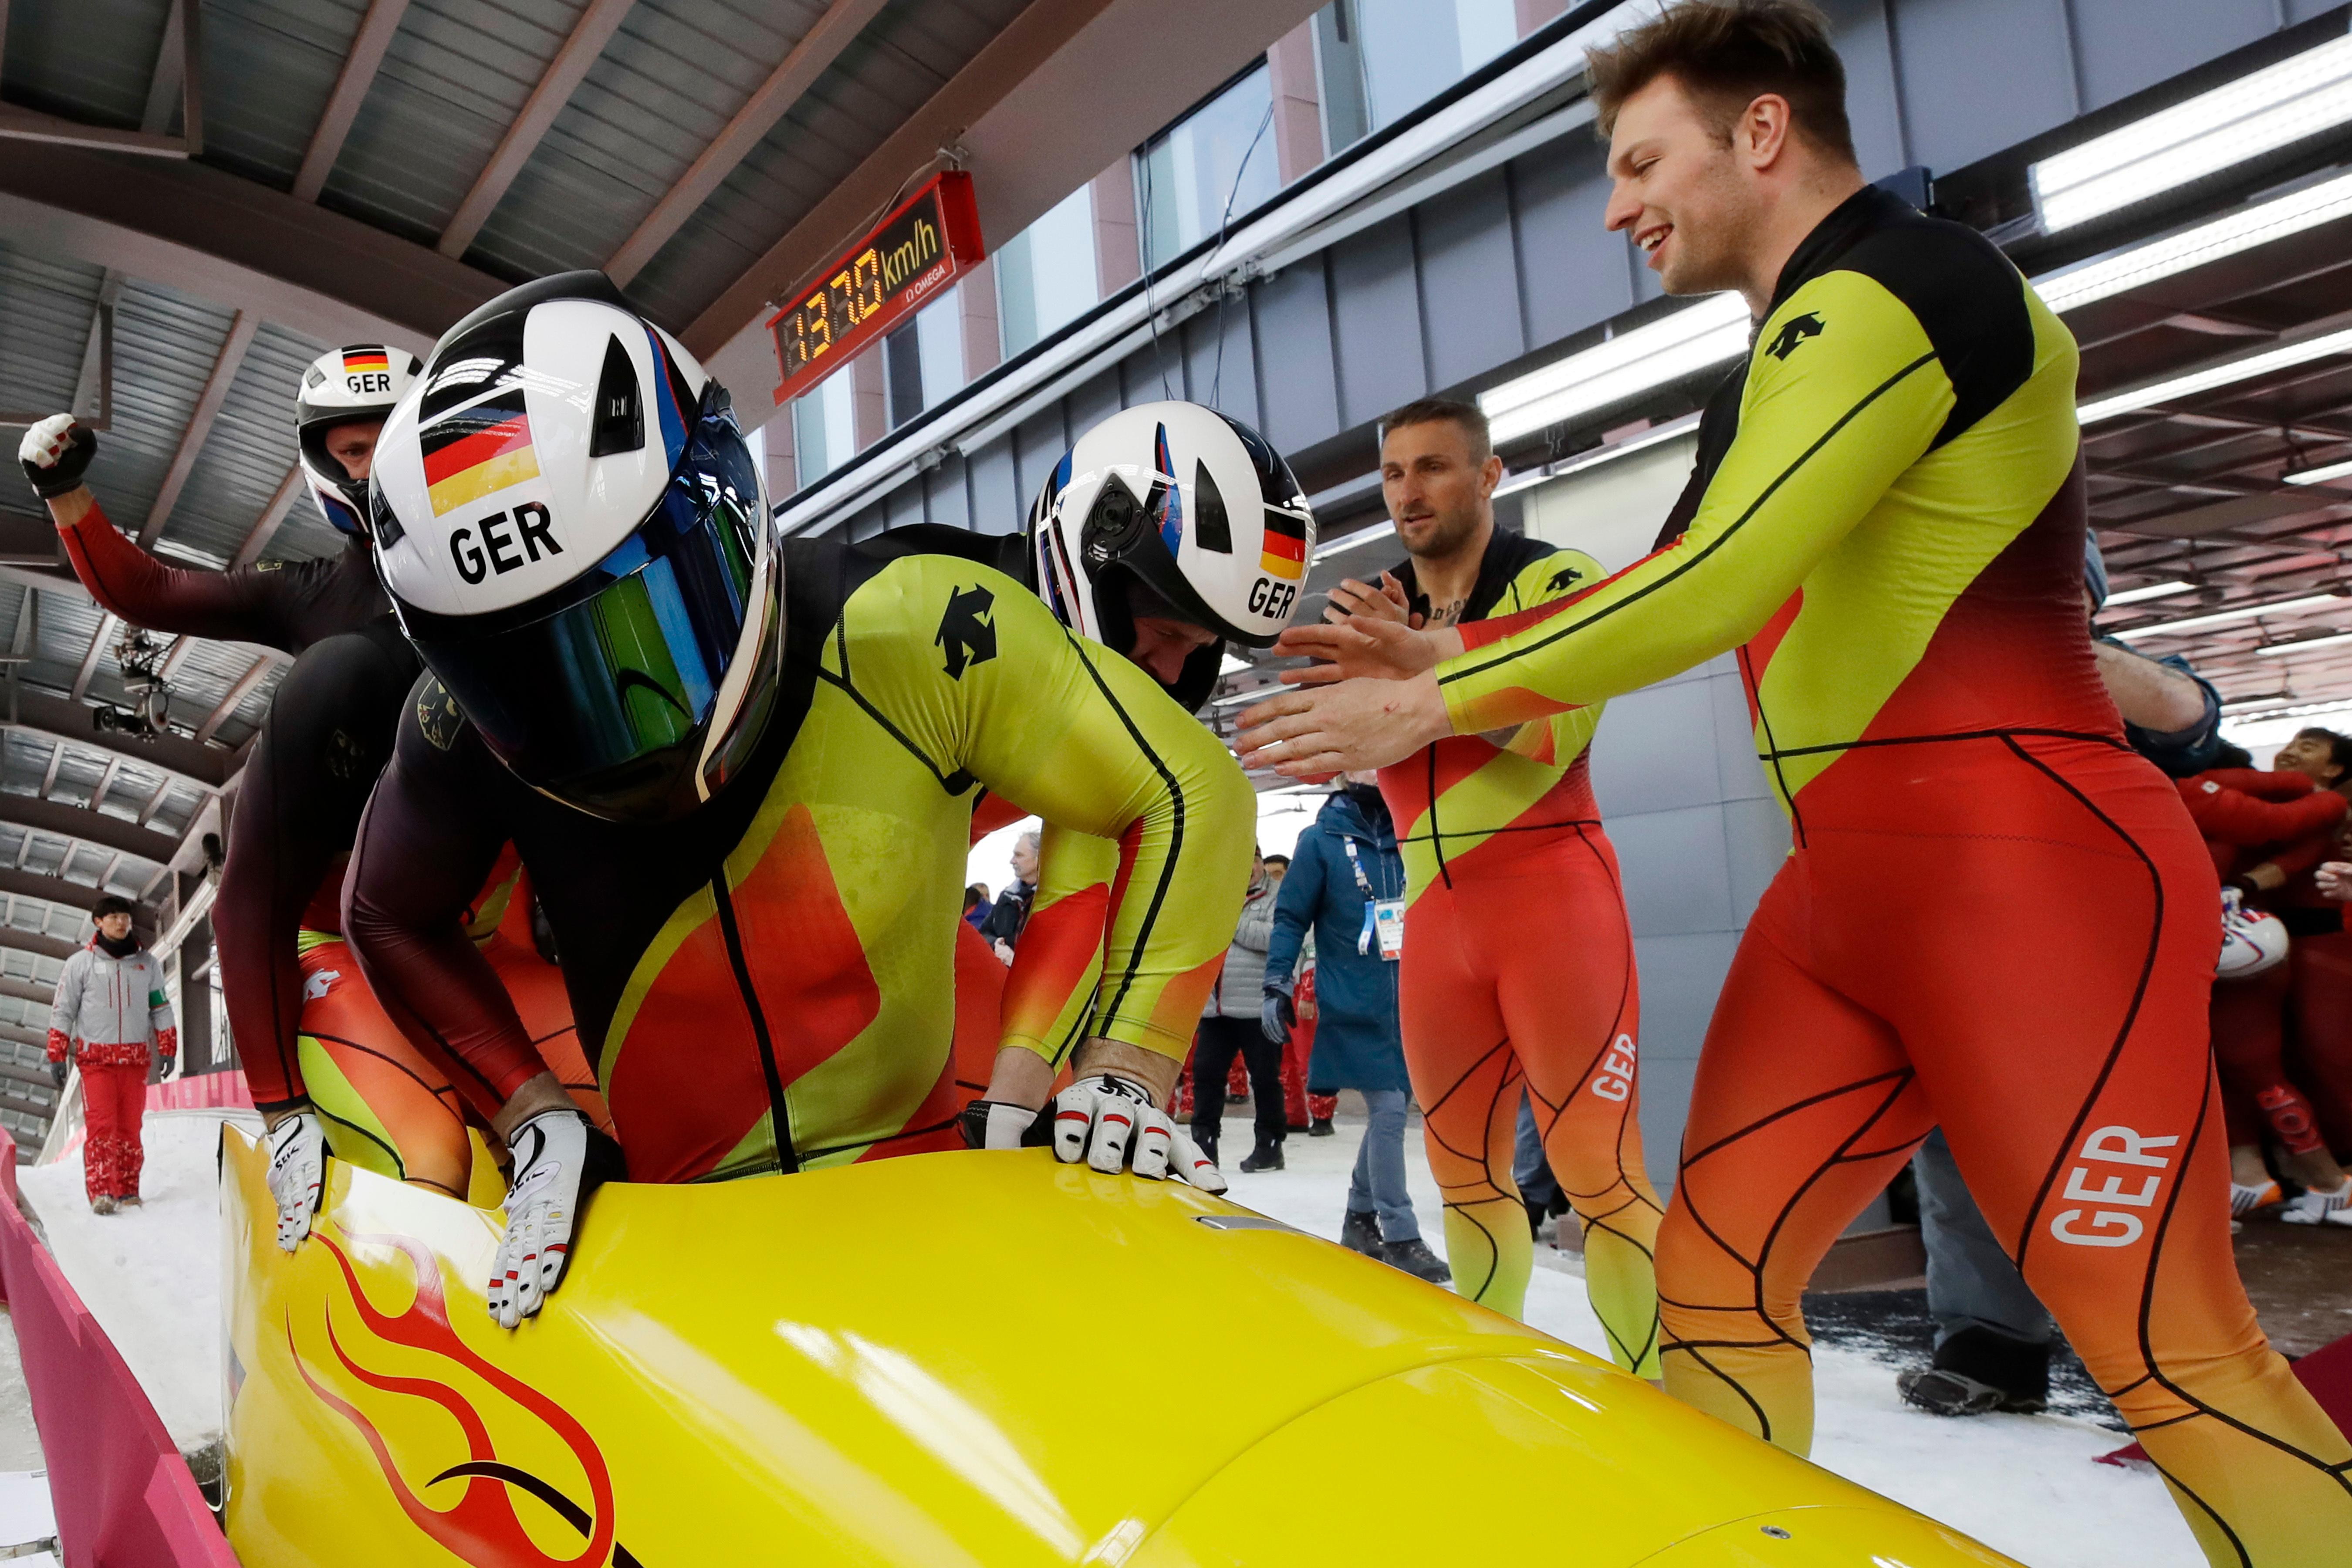 Driver Francesco Friedrich, Candy Bauer, Martin Grothkopp and Thorsten Margis of Germany celebrate after winning the gold at the four-man bobsled competition final at the 2018 Winter Olympics in Pyeongchang, South Korea, Sunday, Feb. 25, 2018. (AP Photo/Andy Wong)